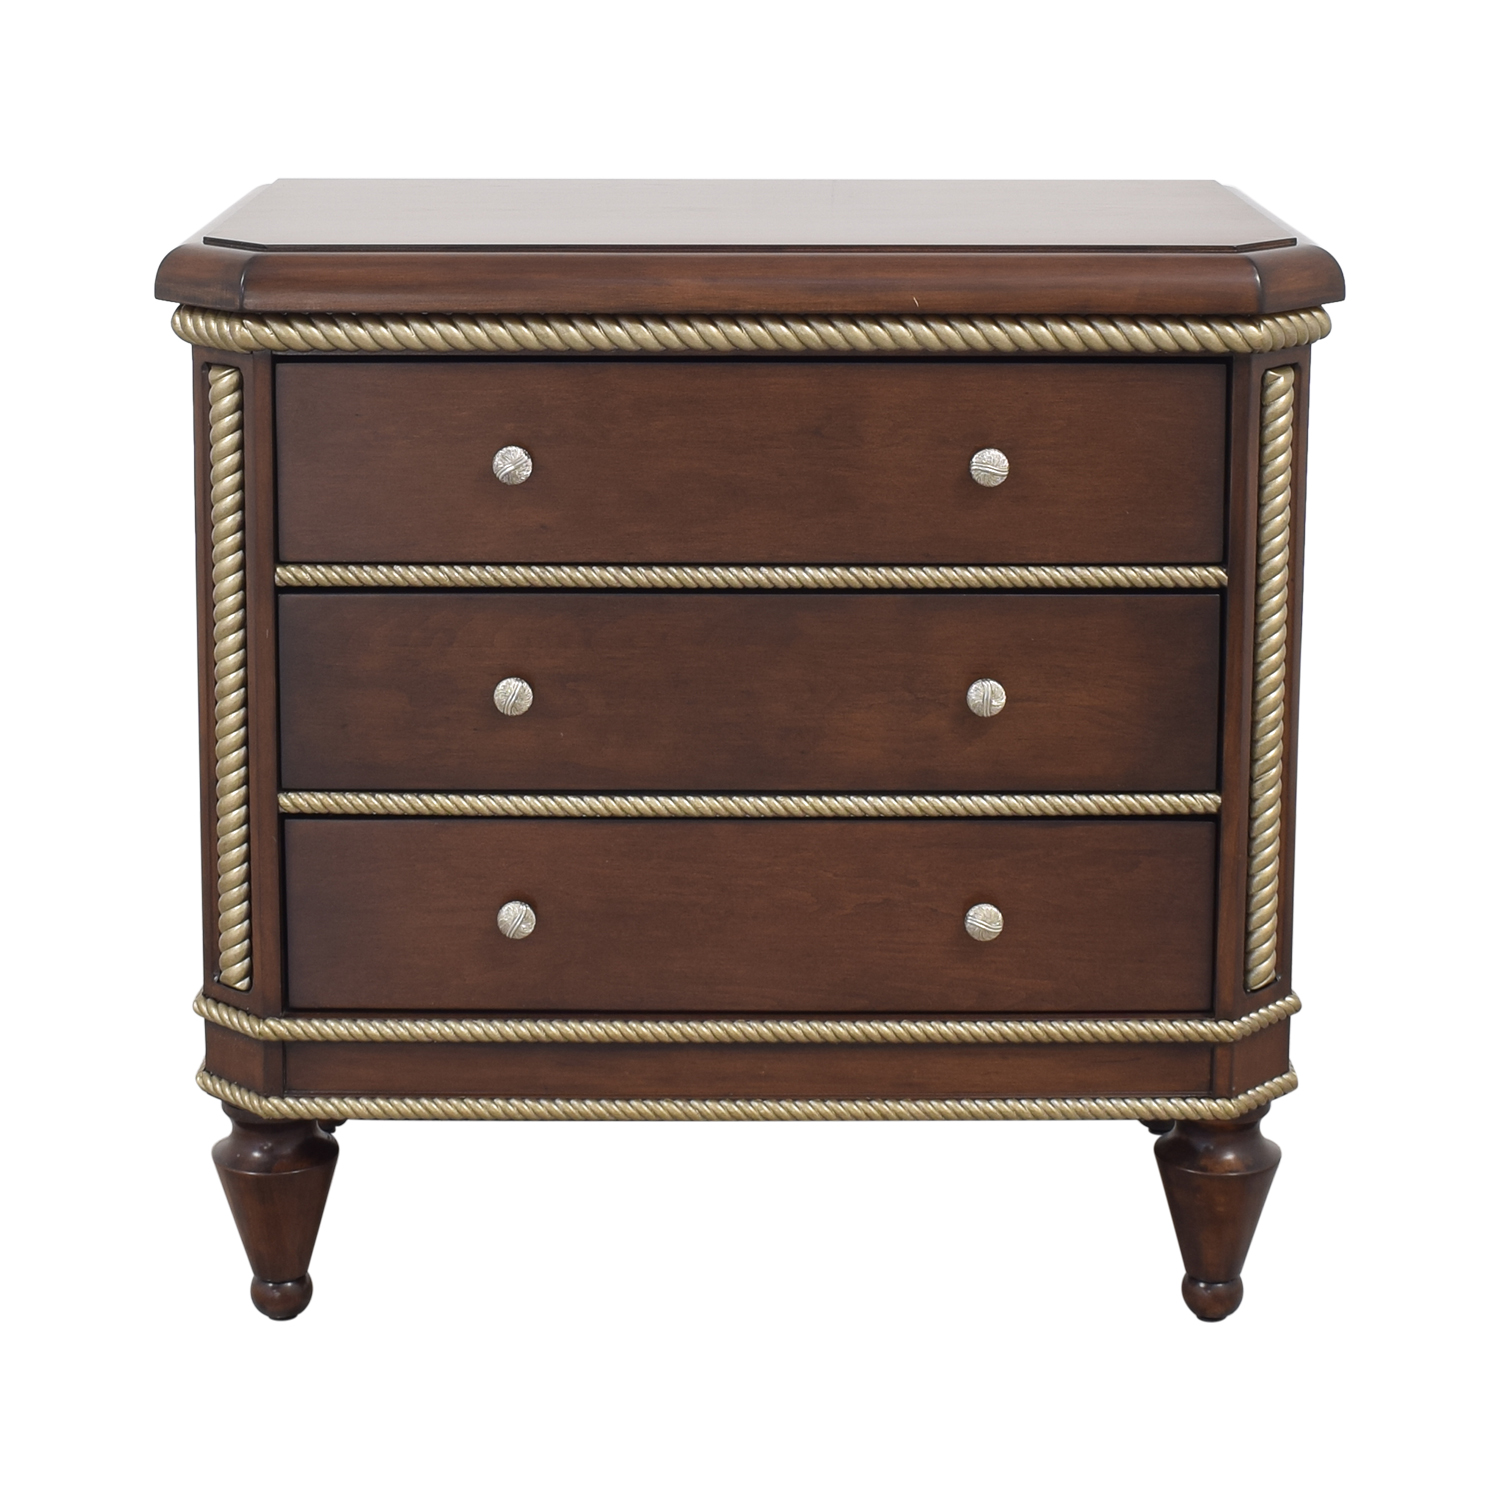 Swaim Swaim Chest of Drawers price